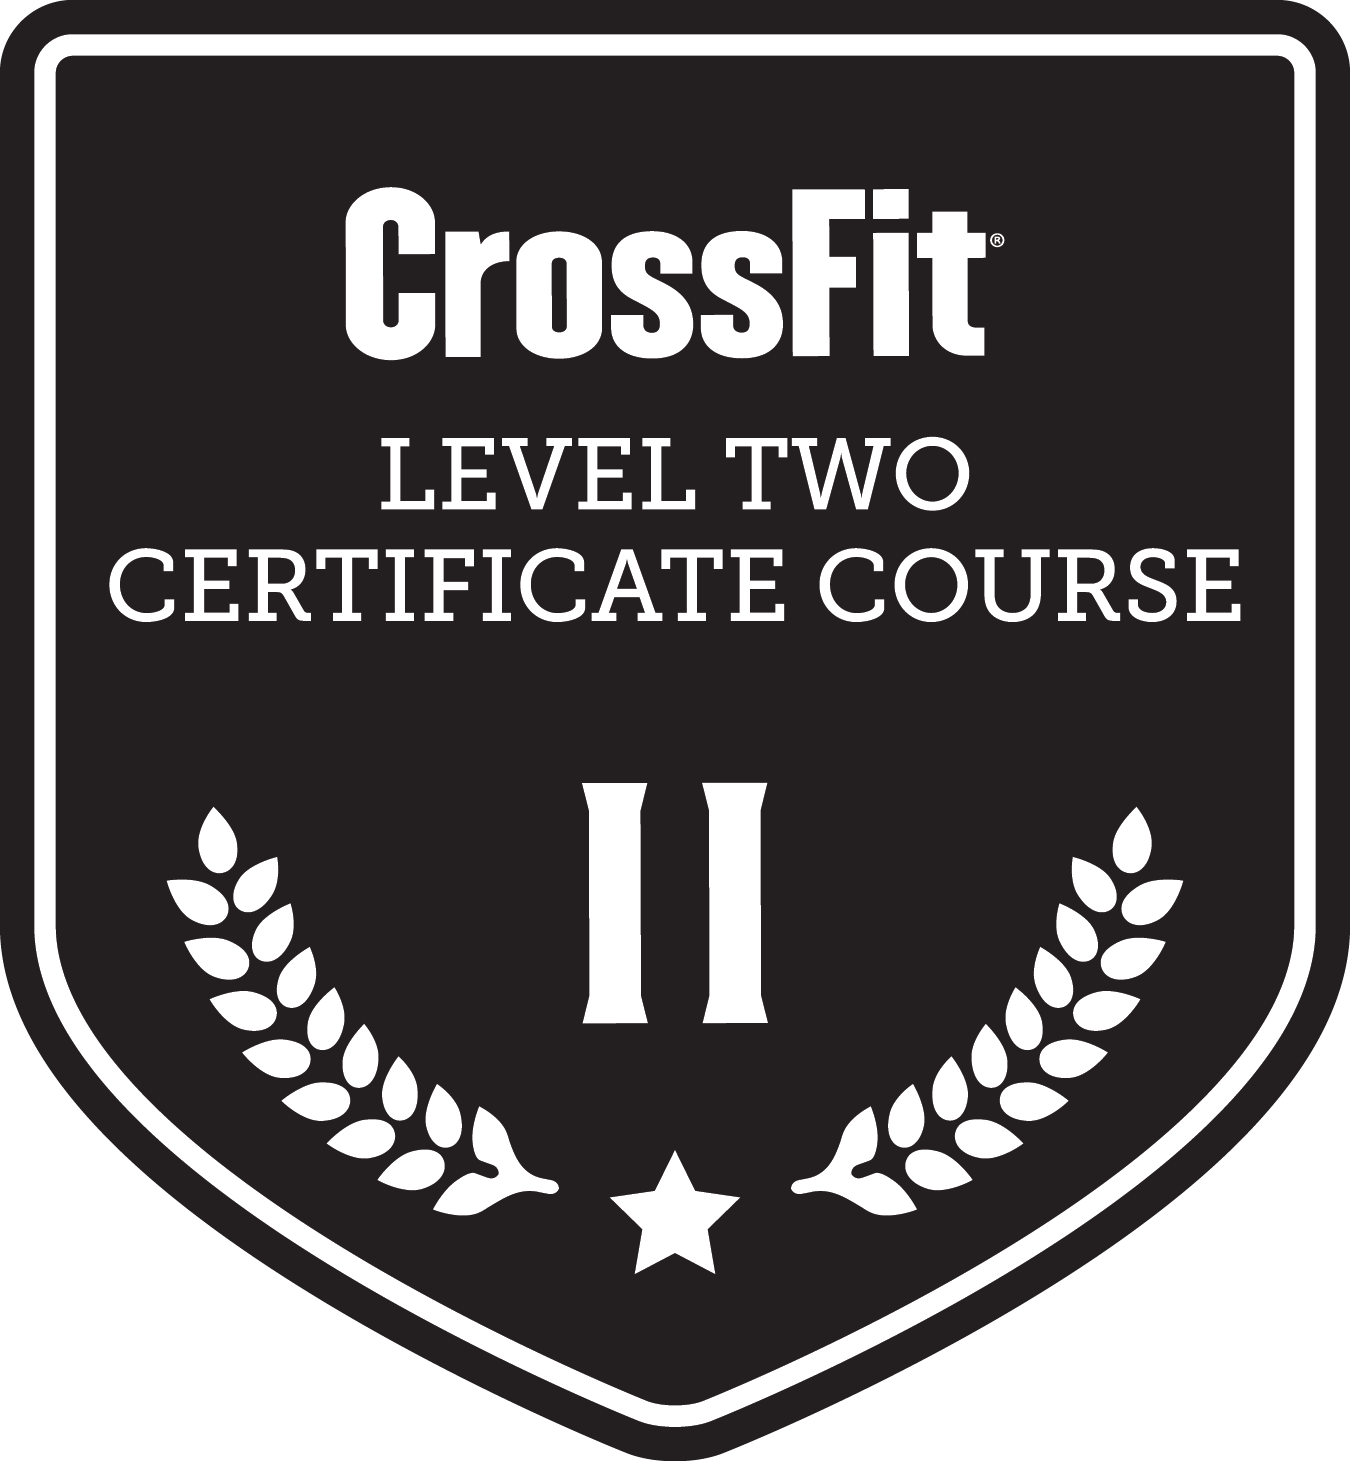 CrossFit Level 2 Certificate Course